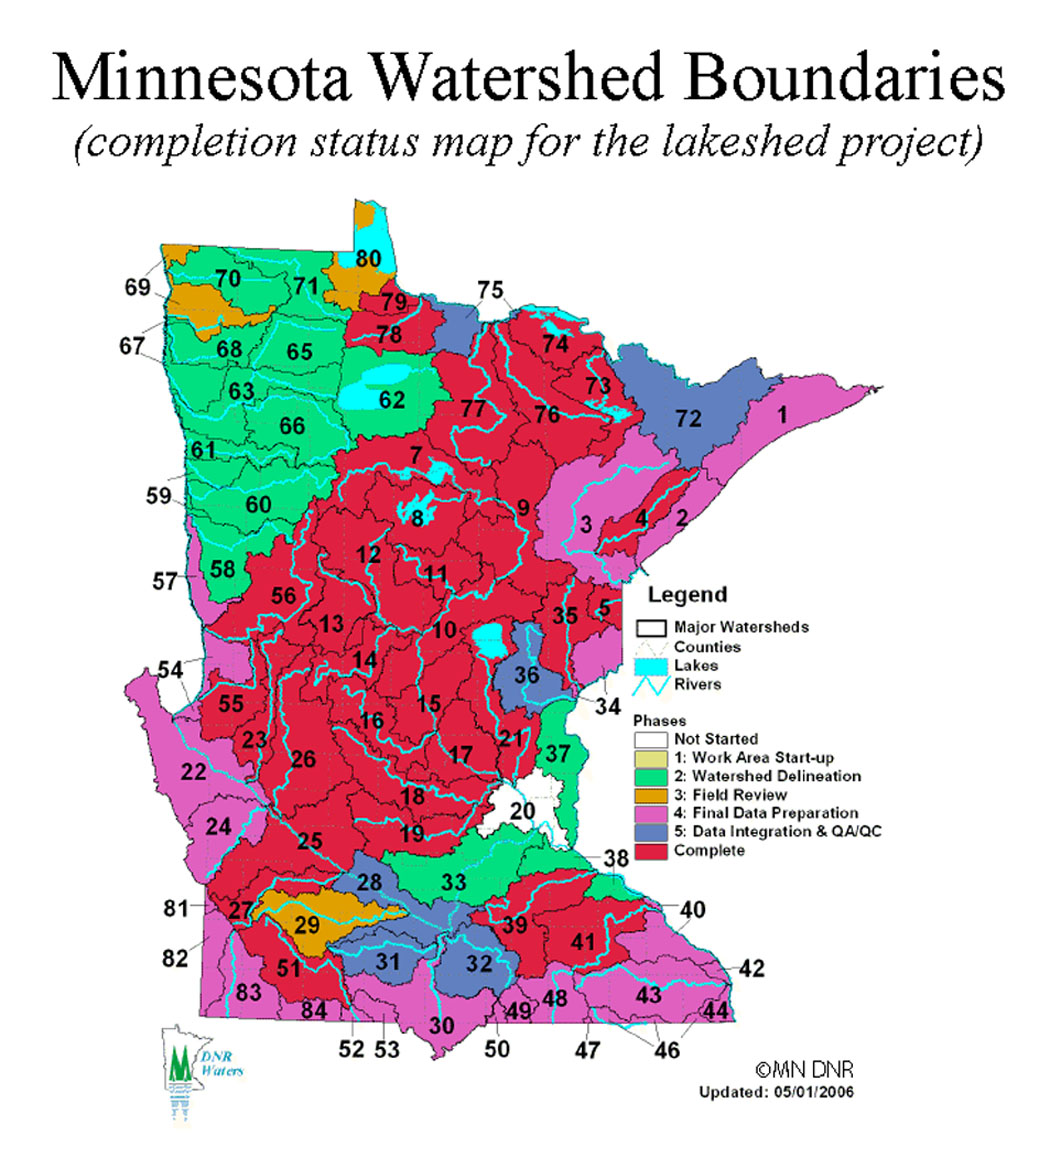 Minnesota Watershed Boundaries